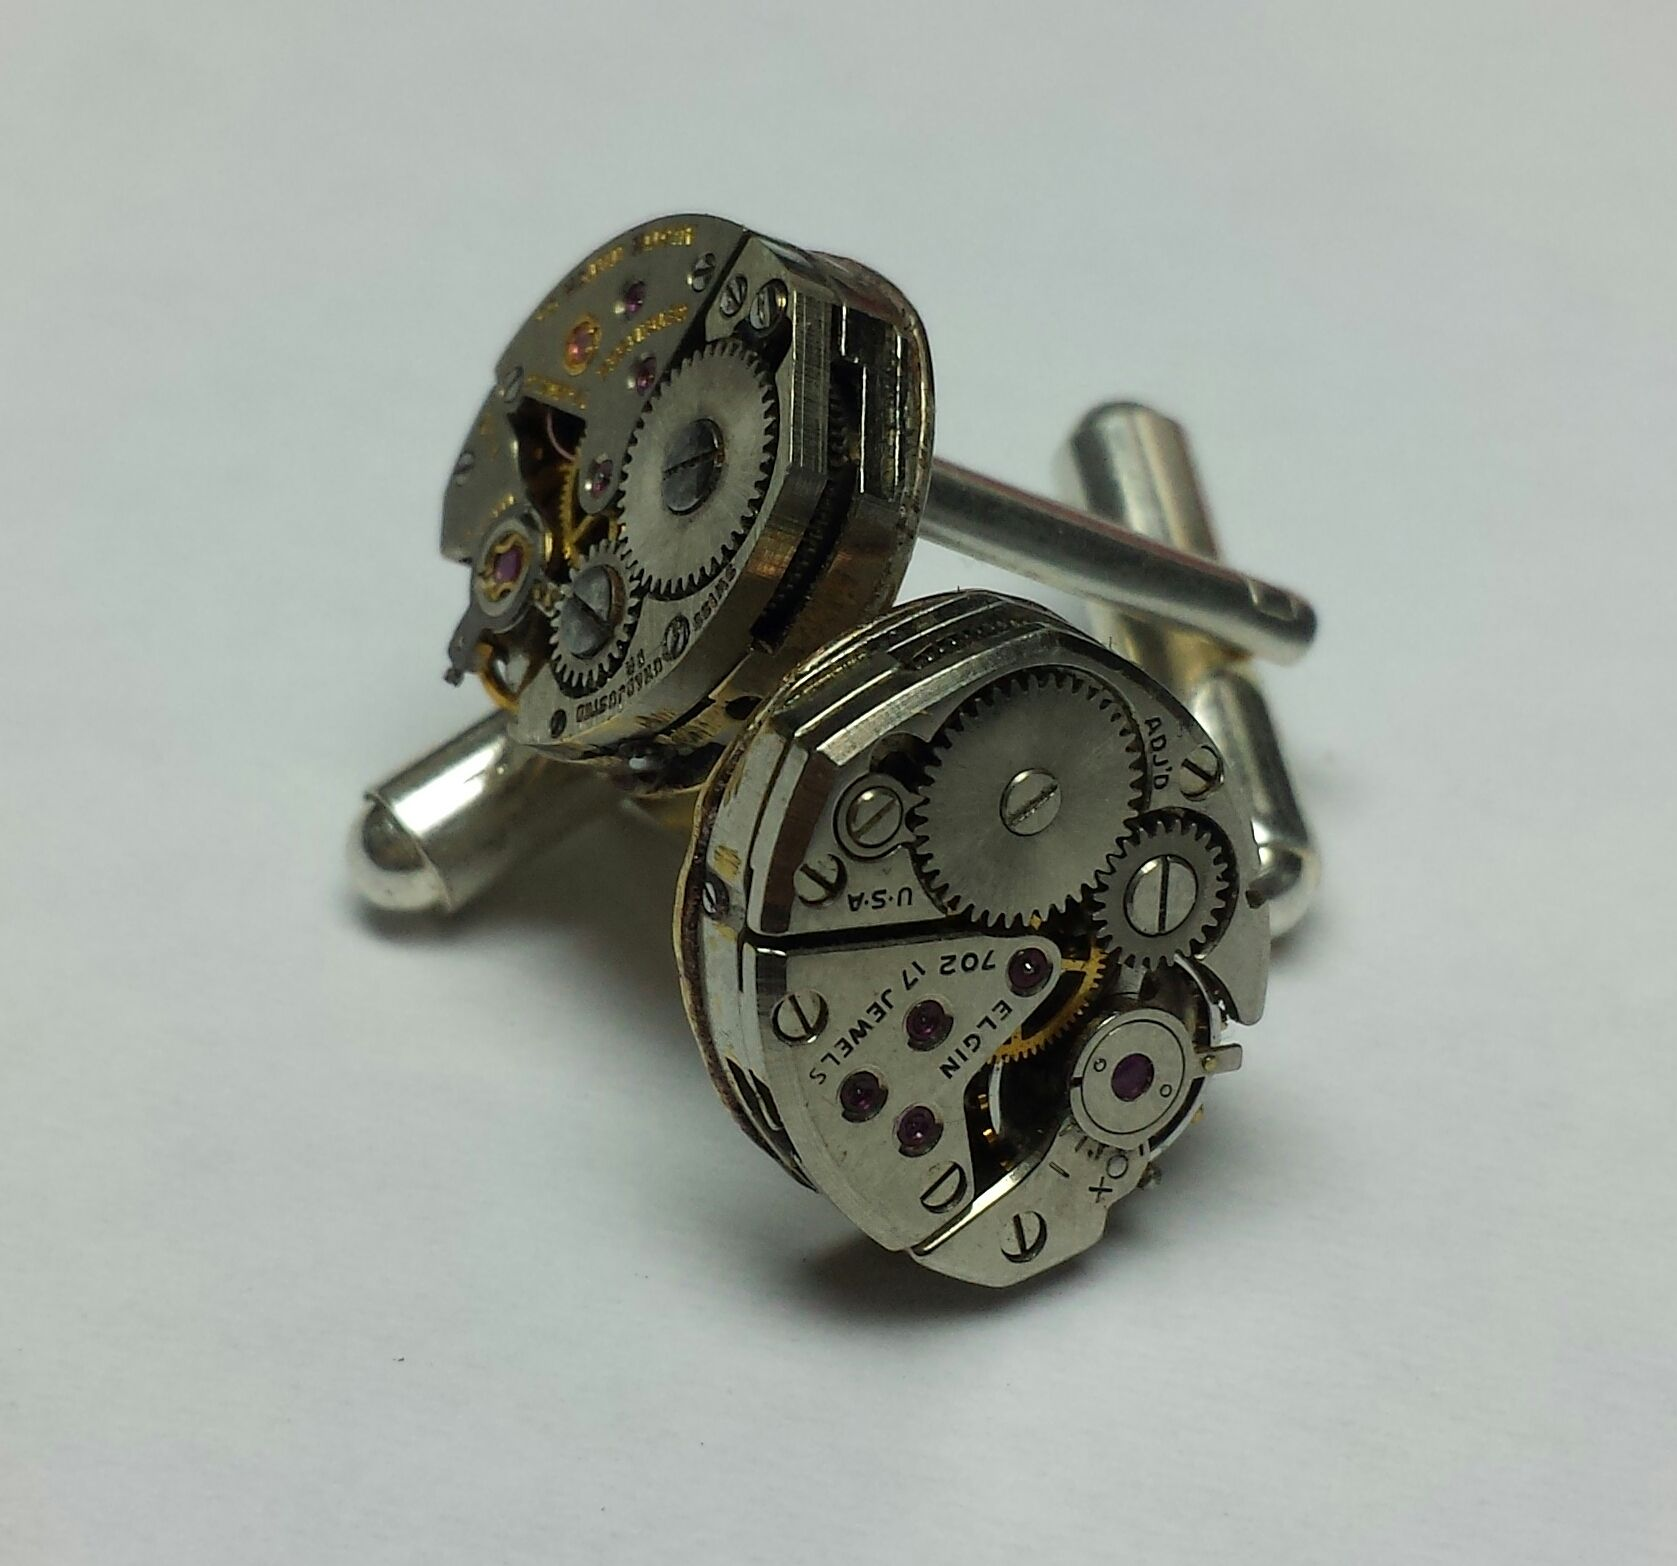 Custom Designed Cuff Links @ Skatell's Manufacturing Jewelers  Mt. Pleasant, SC  843-849-8488  Email me:  kathryn@skatells.com